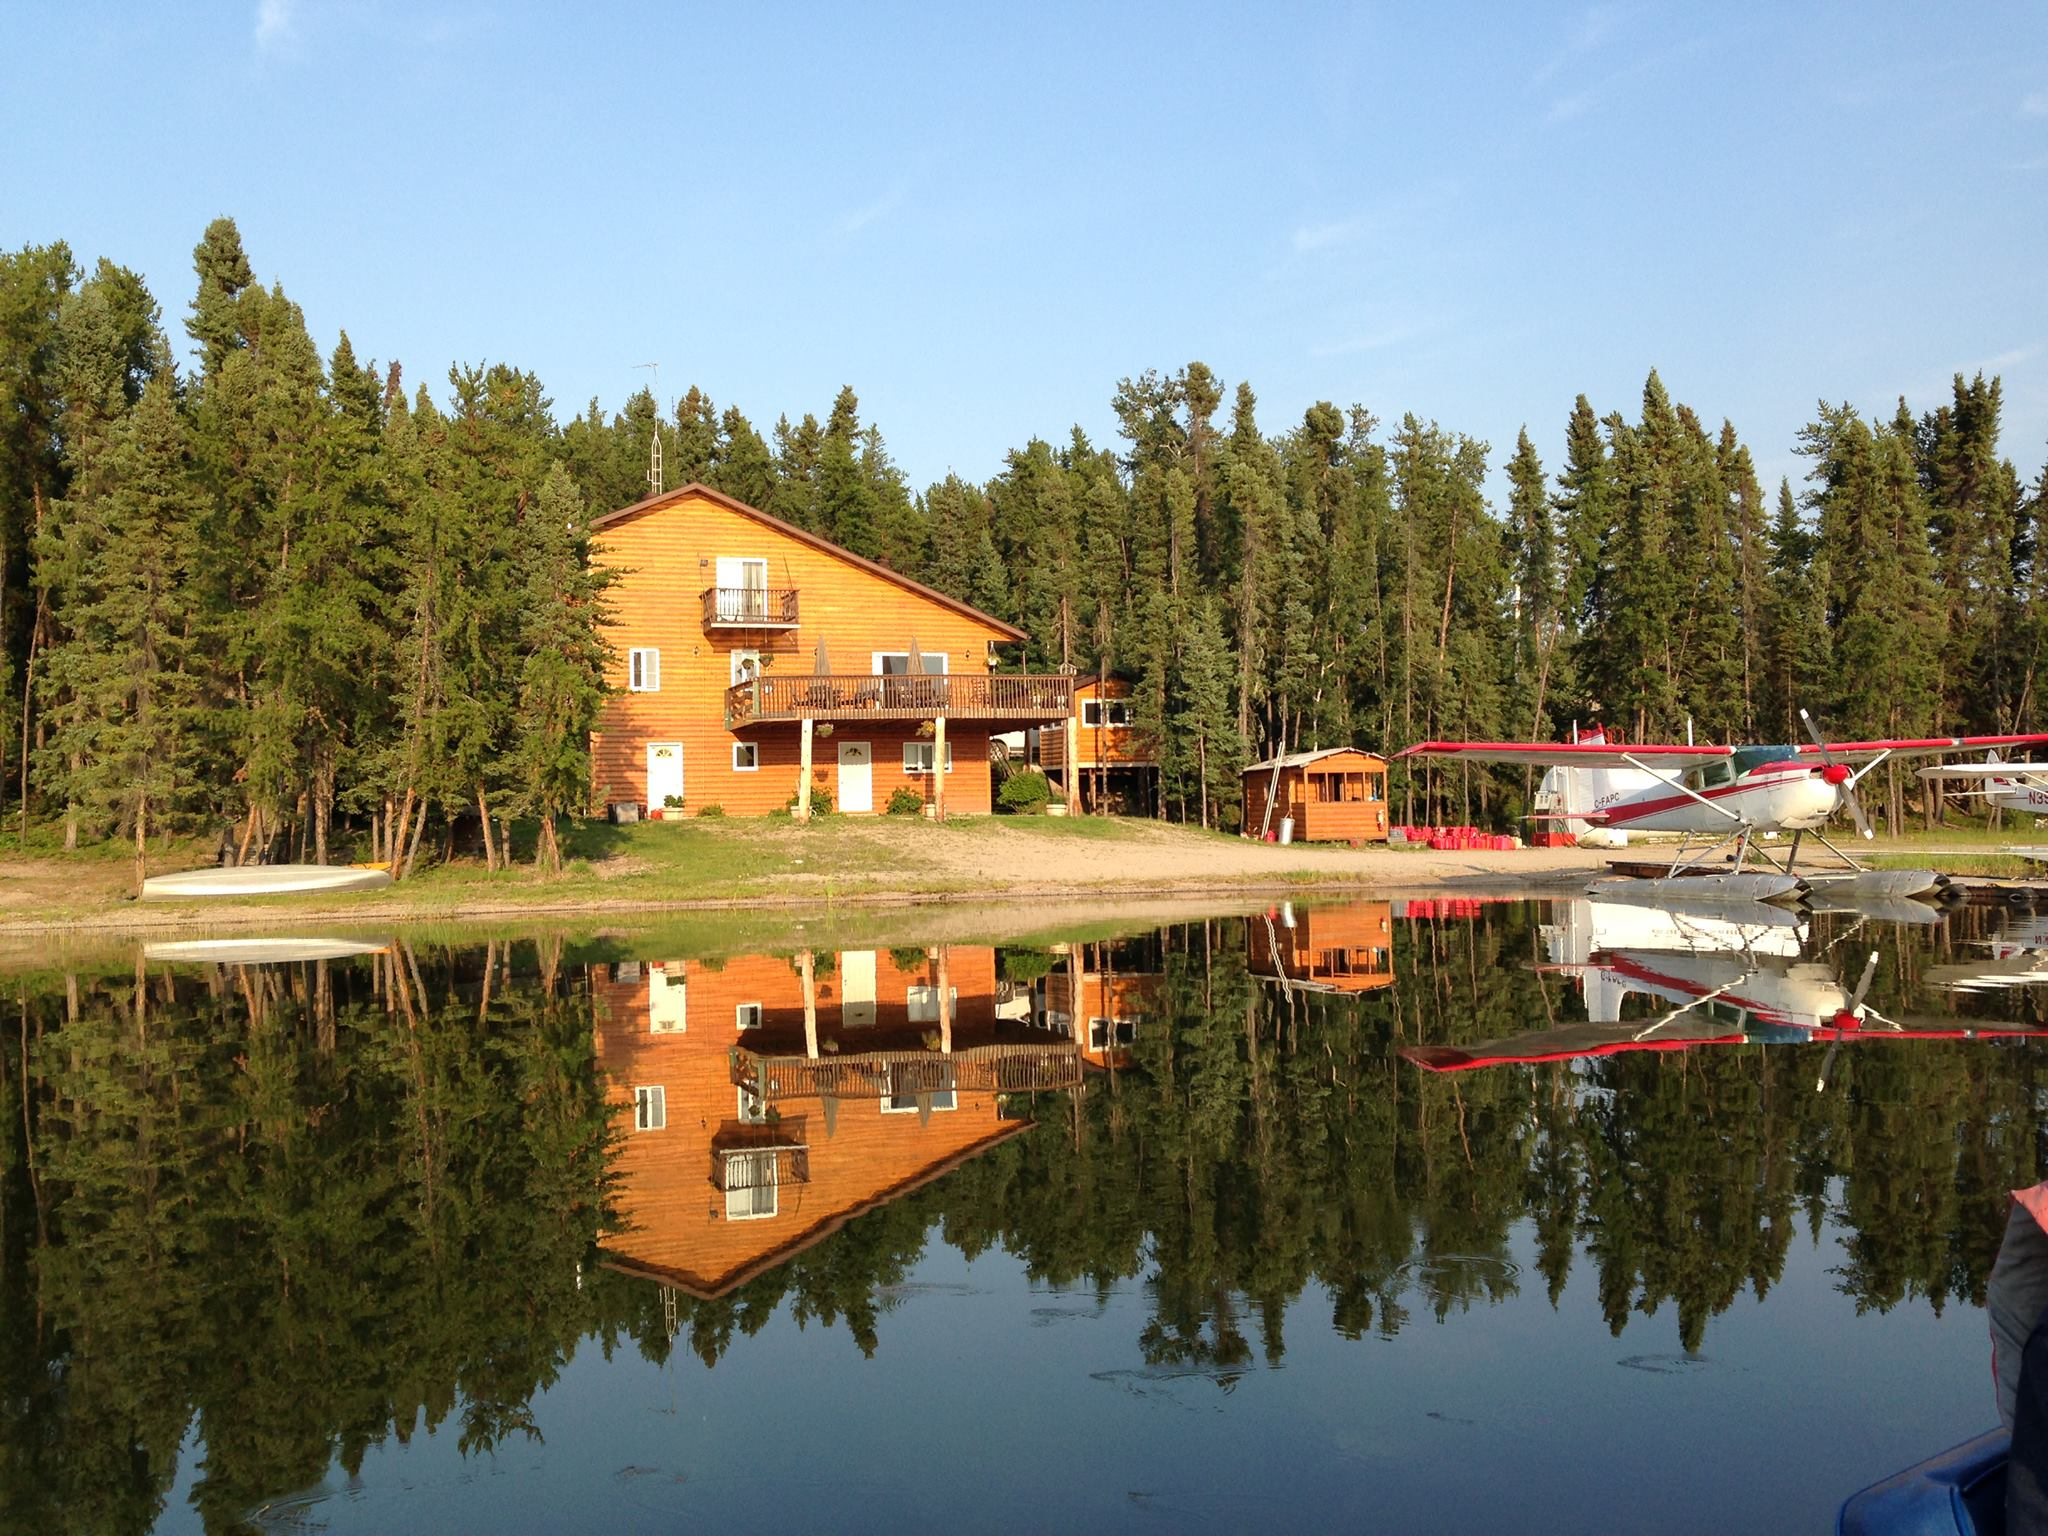 In the main base camp we have nine cabins which can accommodate parties of 4-12 people. We also have tons of options for Fly-in or Boat-in camps. Click for more information.